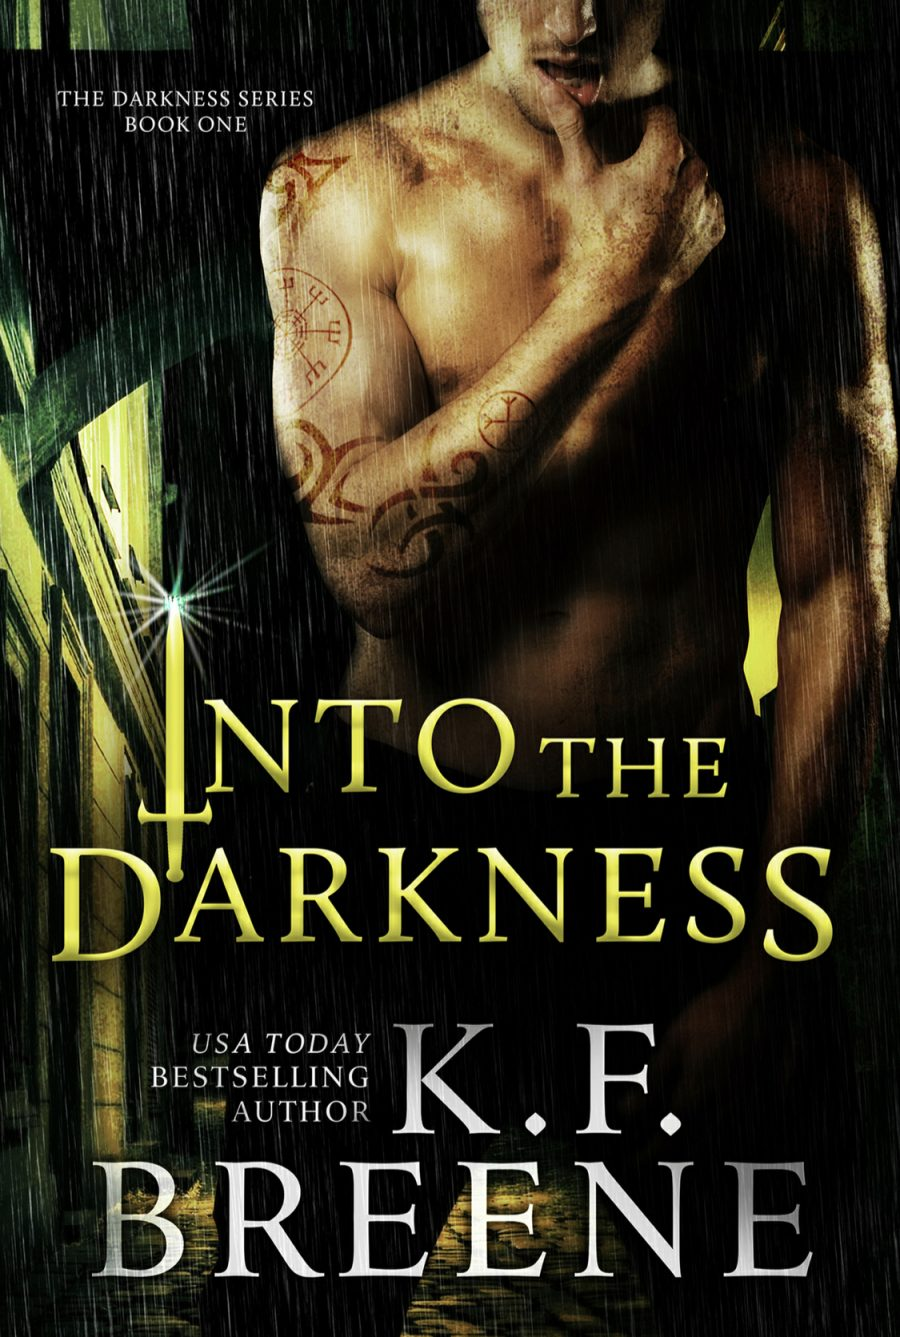 Into The Darkness by K.F. Breene - A Book Review #BookReview #UrbanFantasy #OlderBook #CompleteSeries #KindleUnlimited #KU #Novella